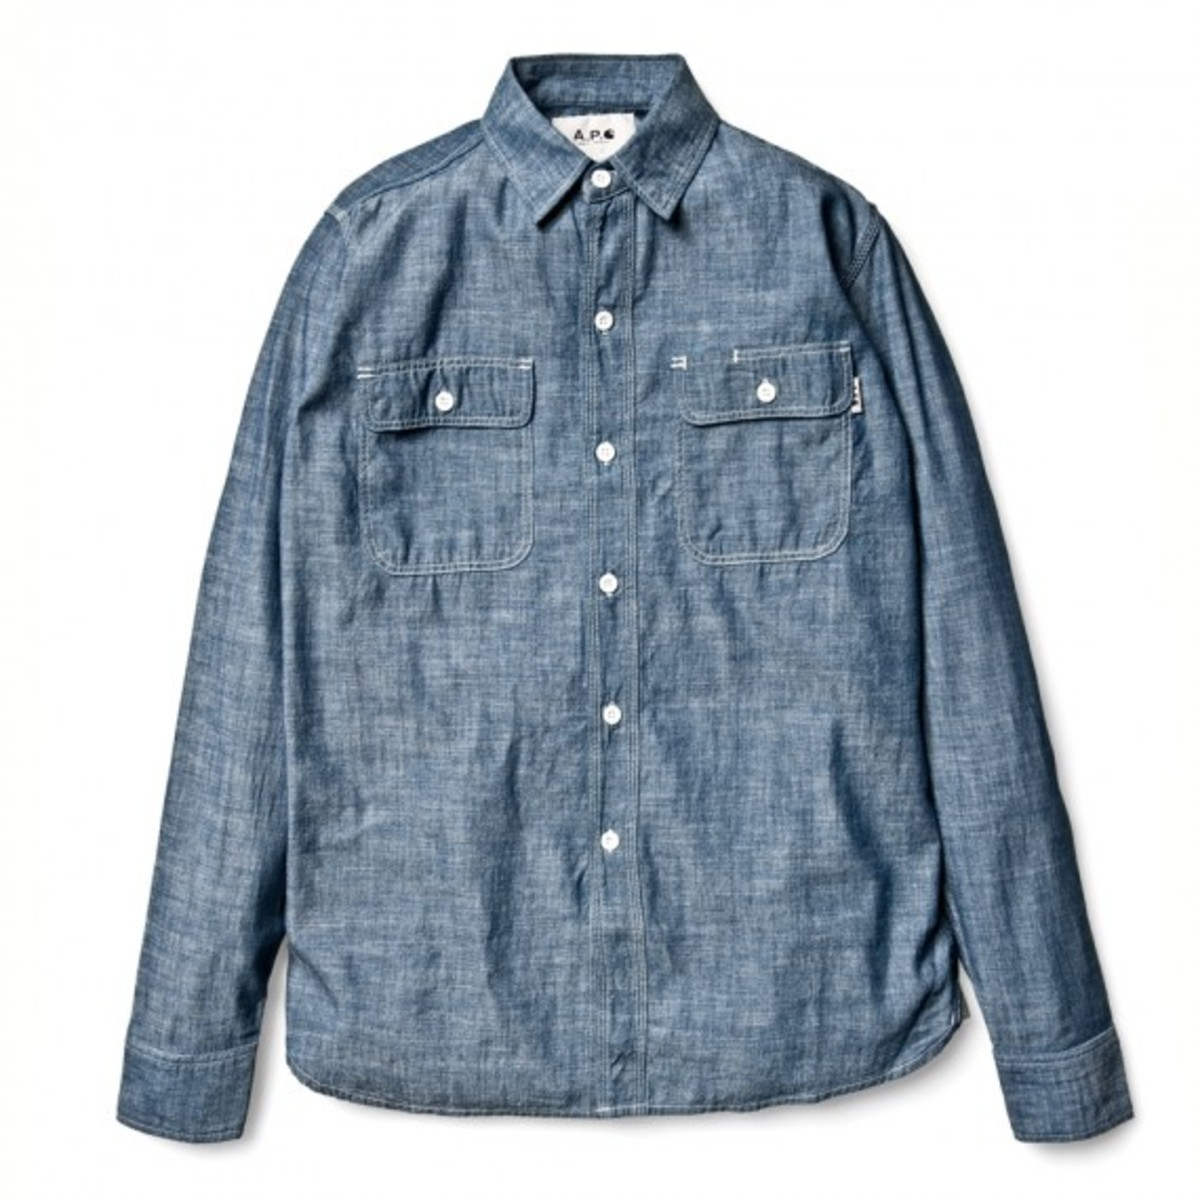 carhartt-apc-chambray-shirt-02